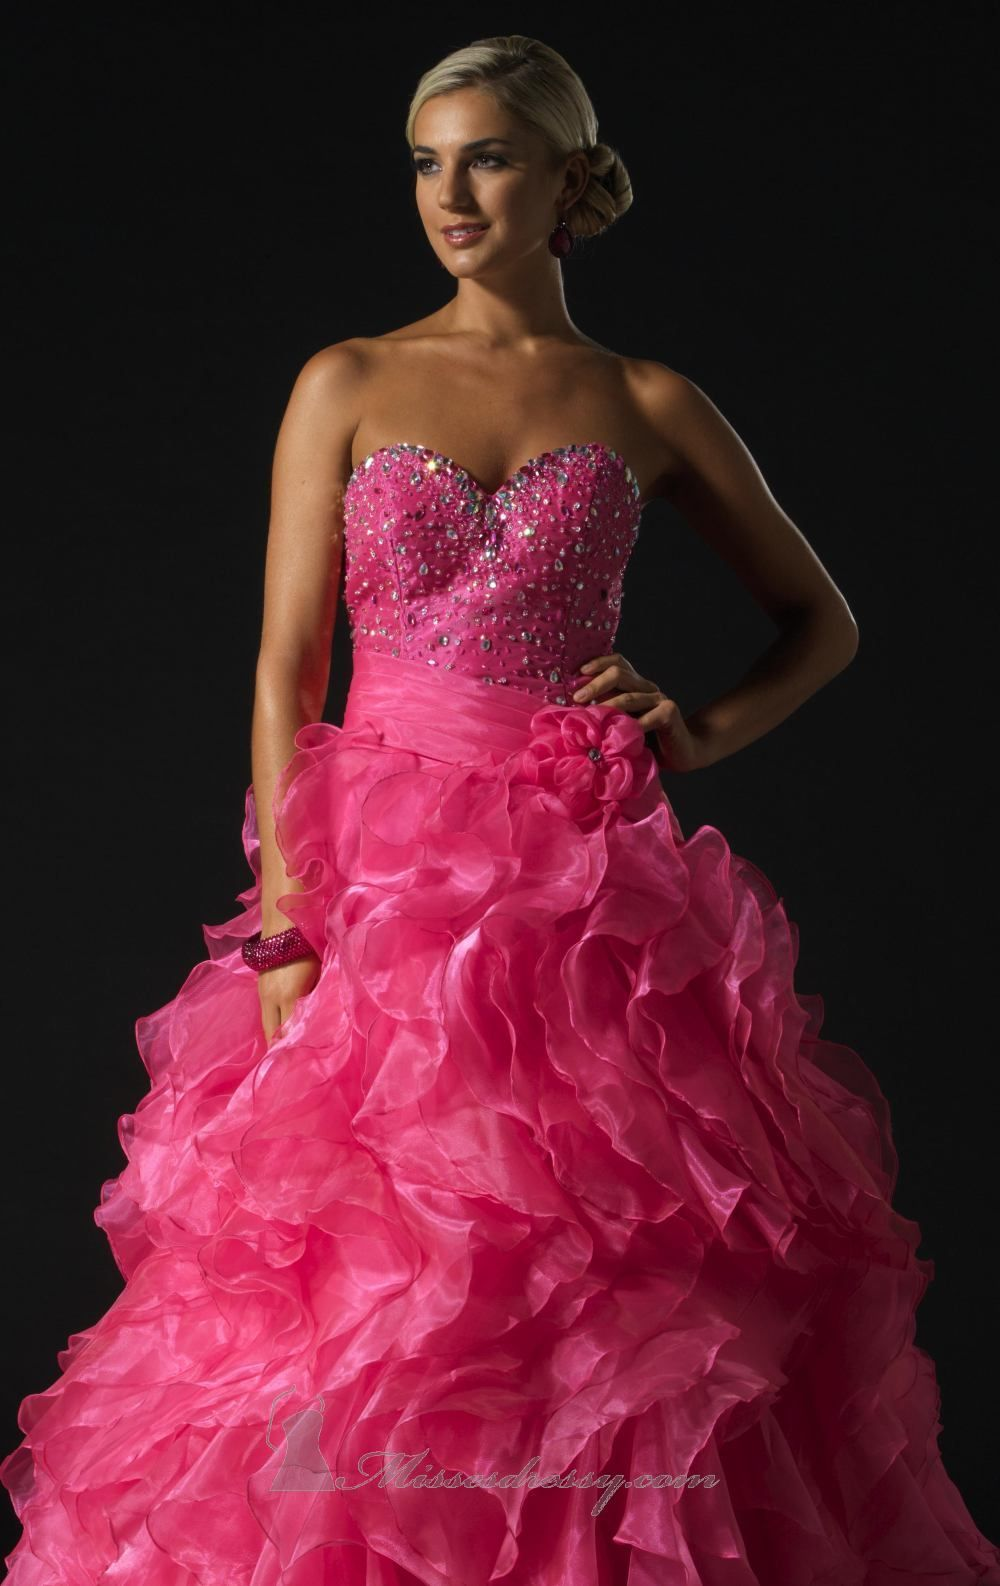 Detailed Poofy Dress